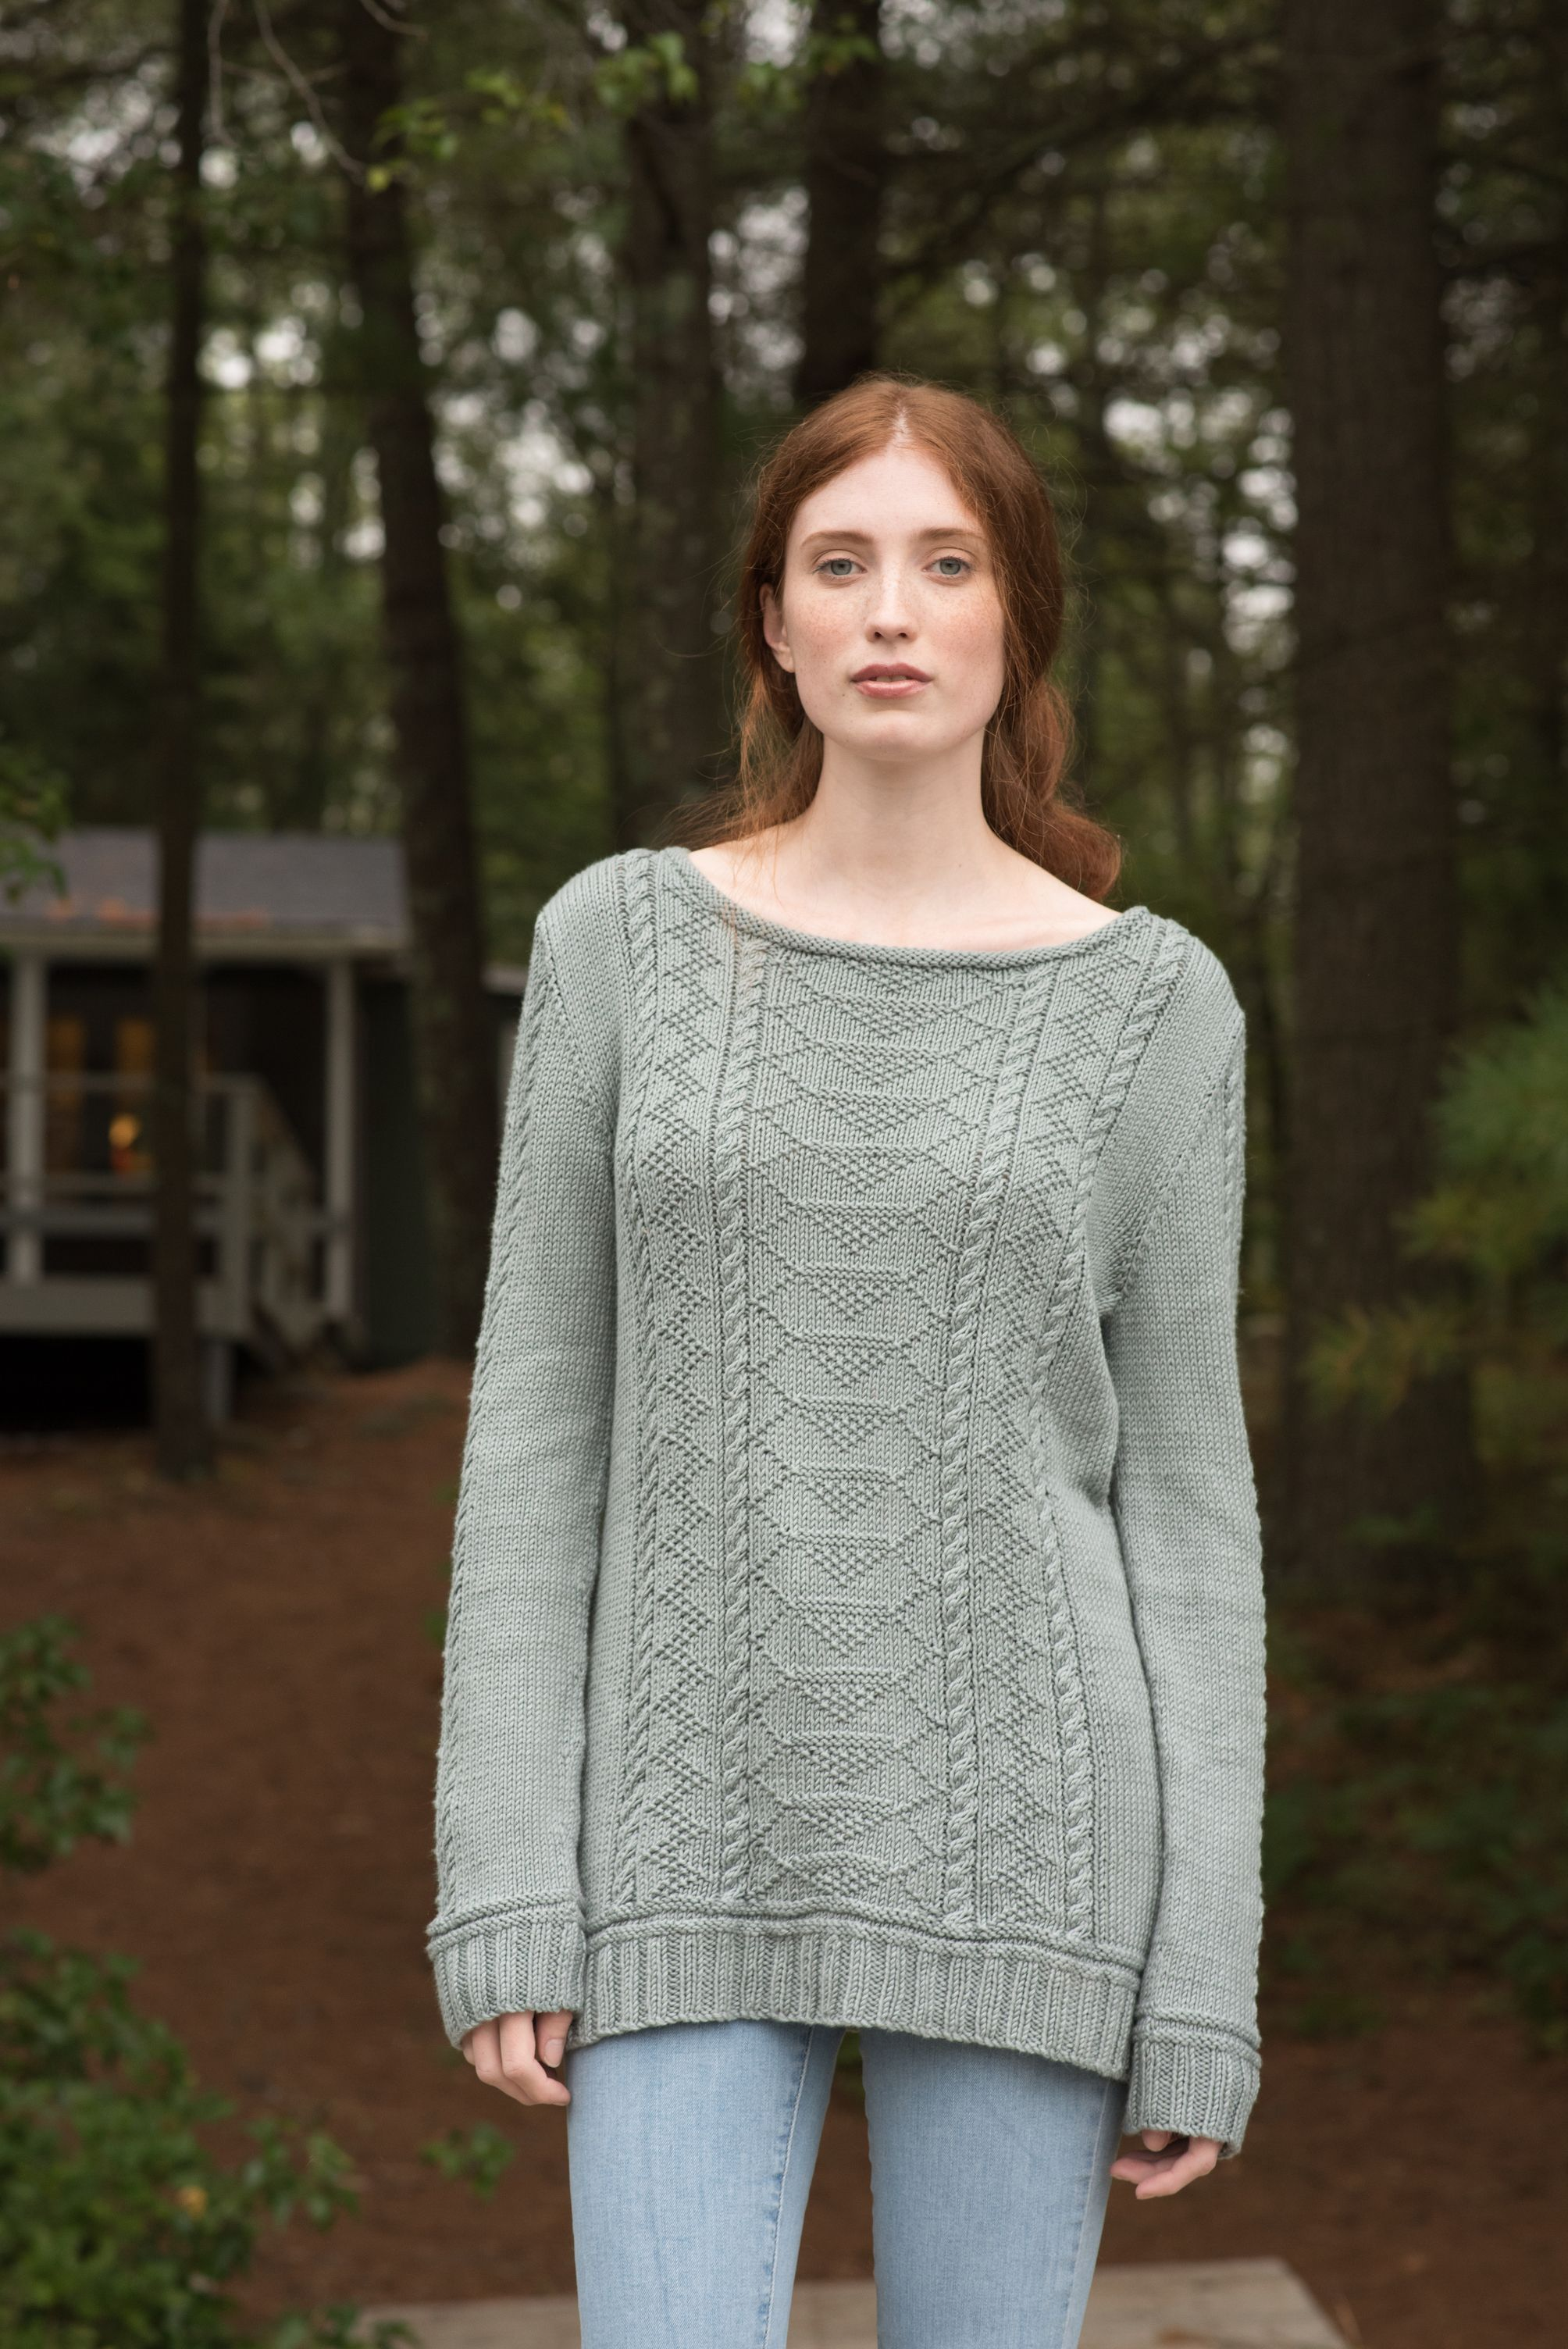 Carra,a gansey-inspired sweater knitting pattern, is knit in pieces ...